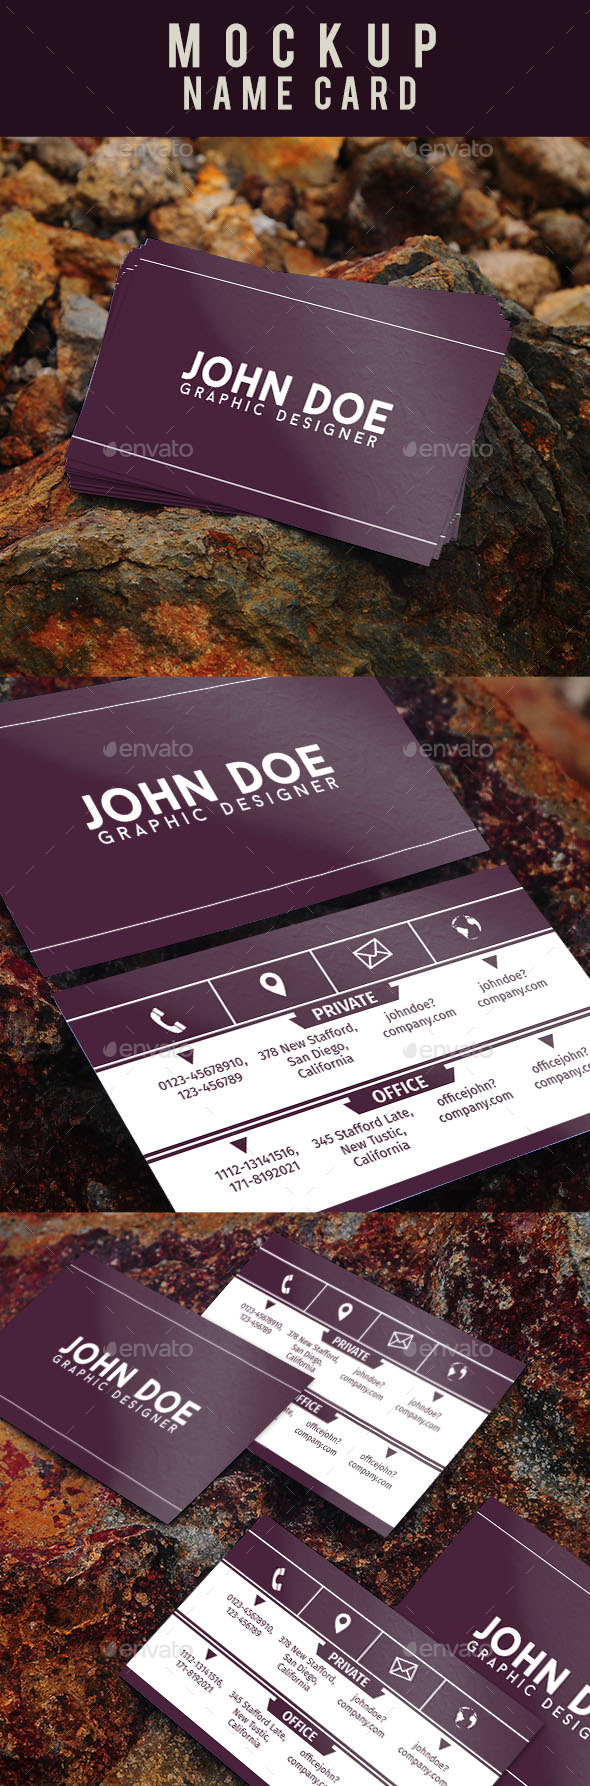 Mockup Name Card - Business Cards Print